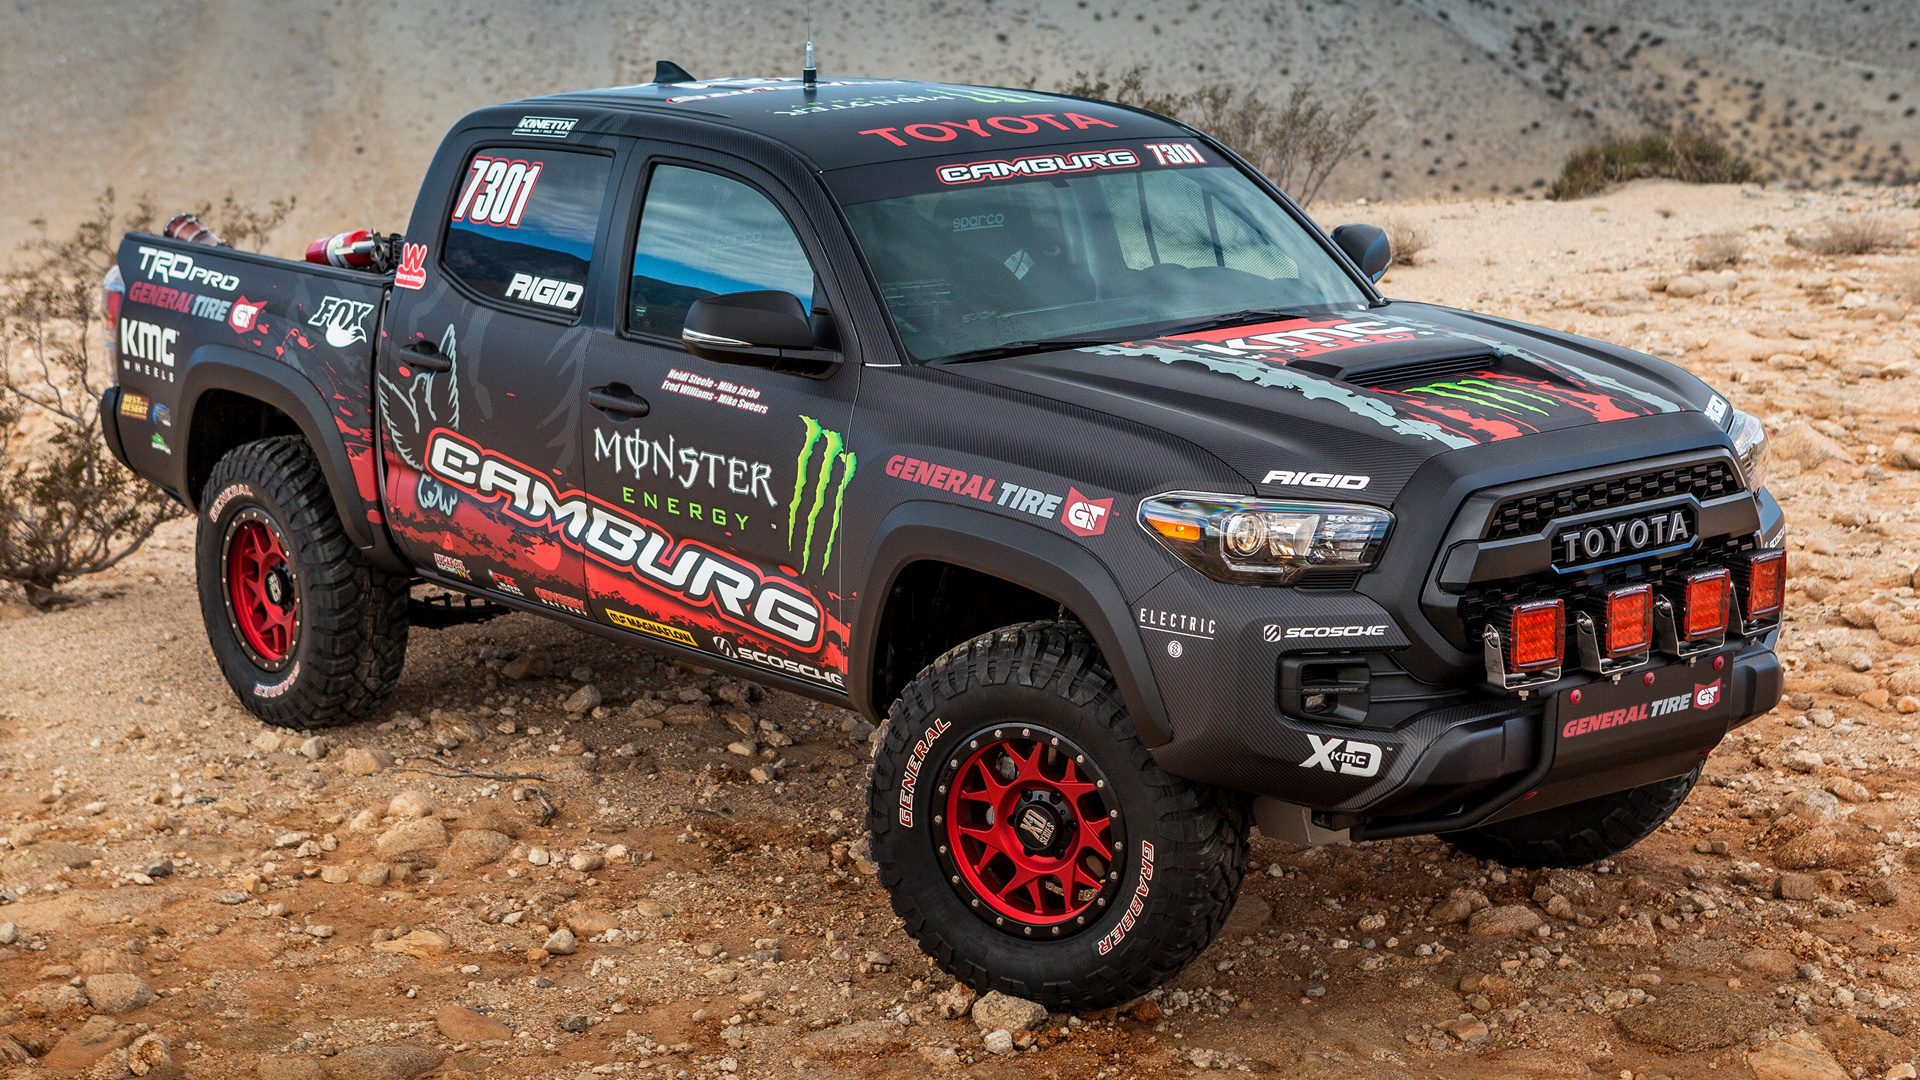 Toyota Tacoma Trd Sport >> Toyota Tacoma TRD Pro Race Truck (2016) Wallpapers and HD Images - Car Pixel